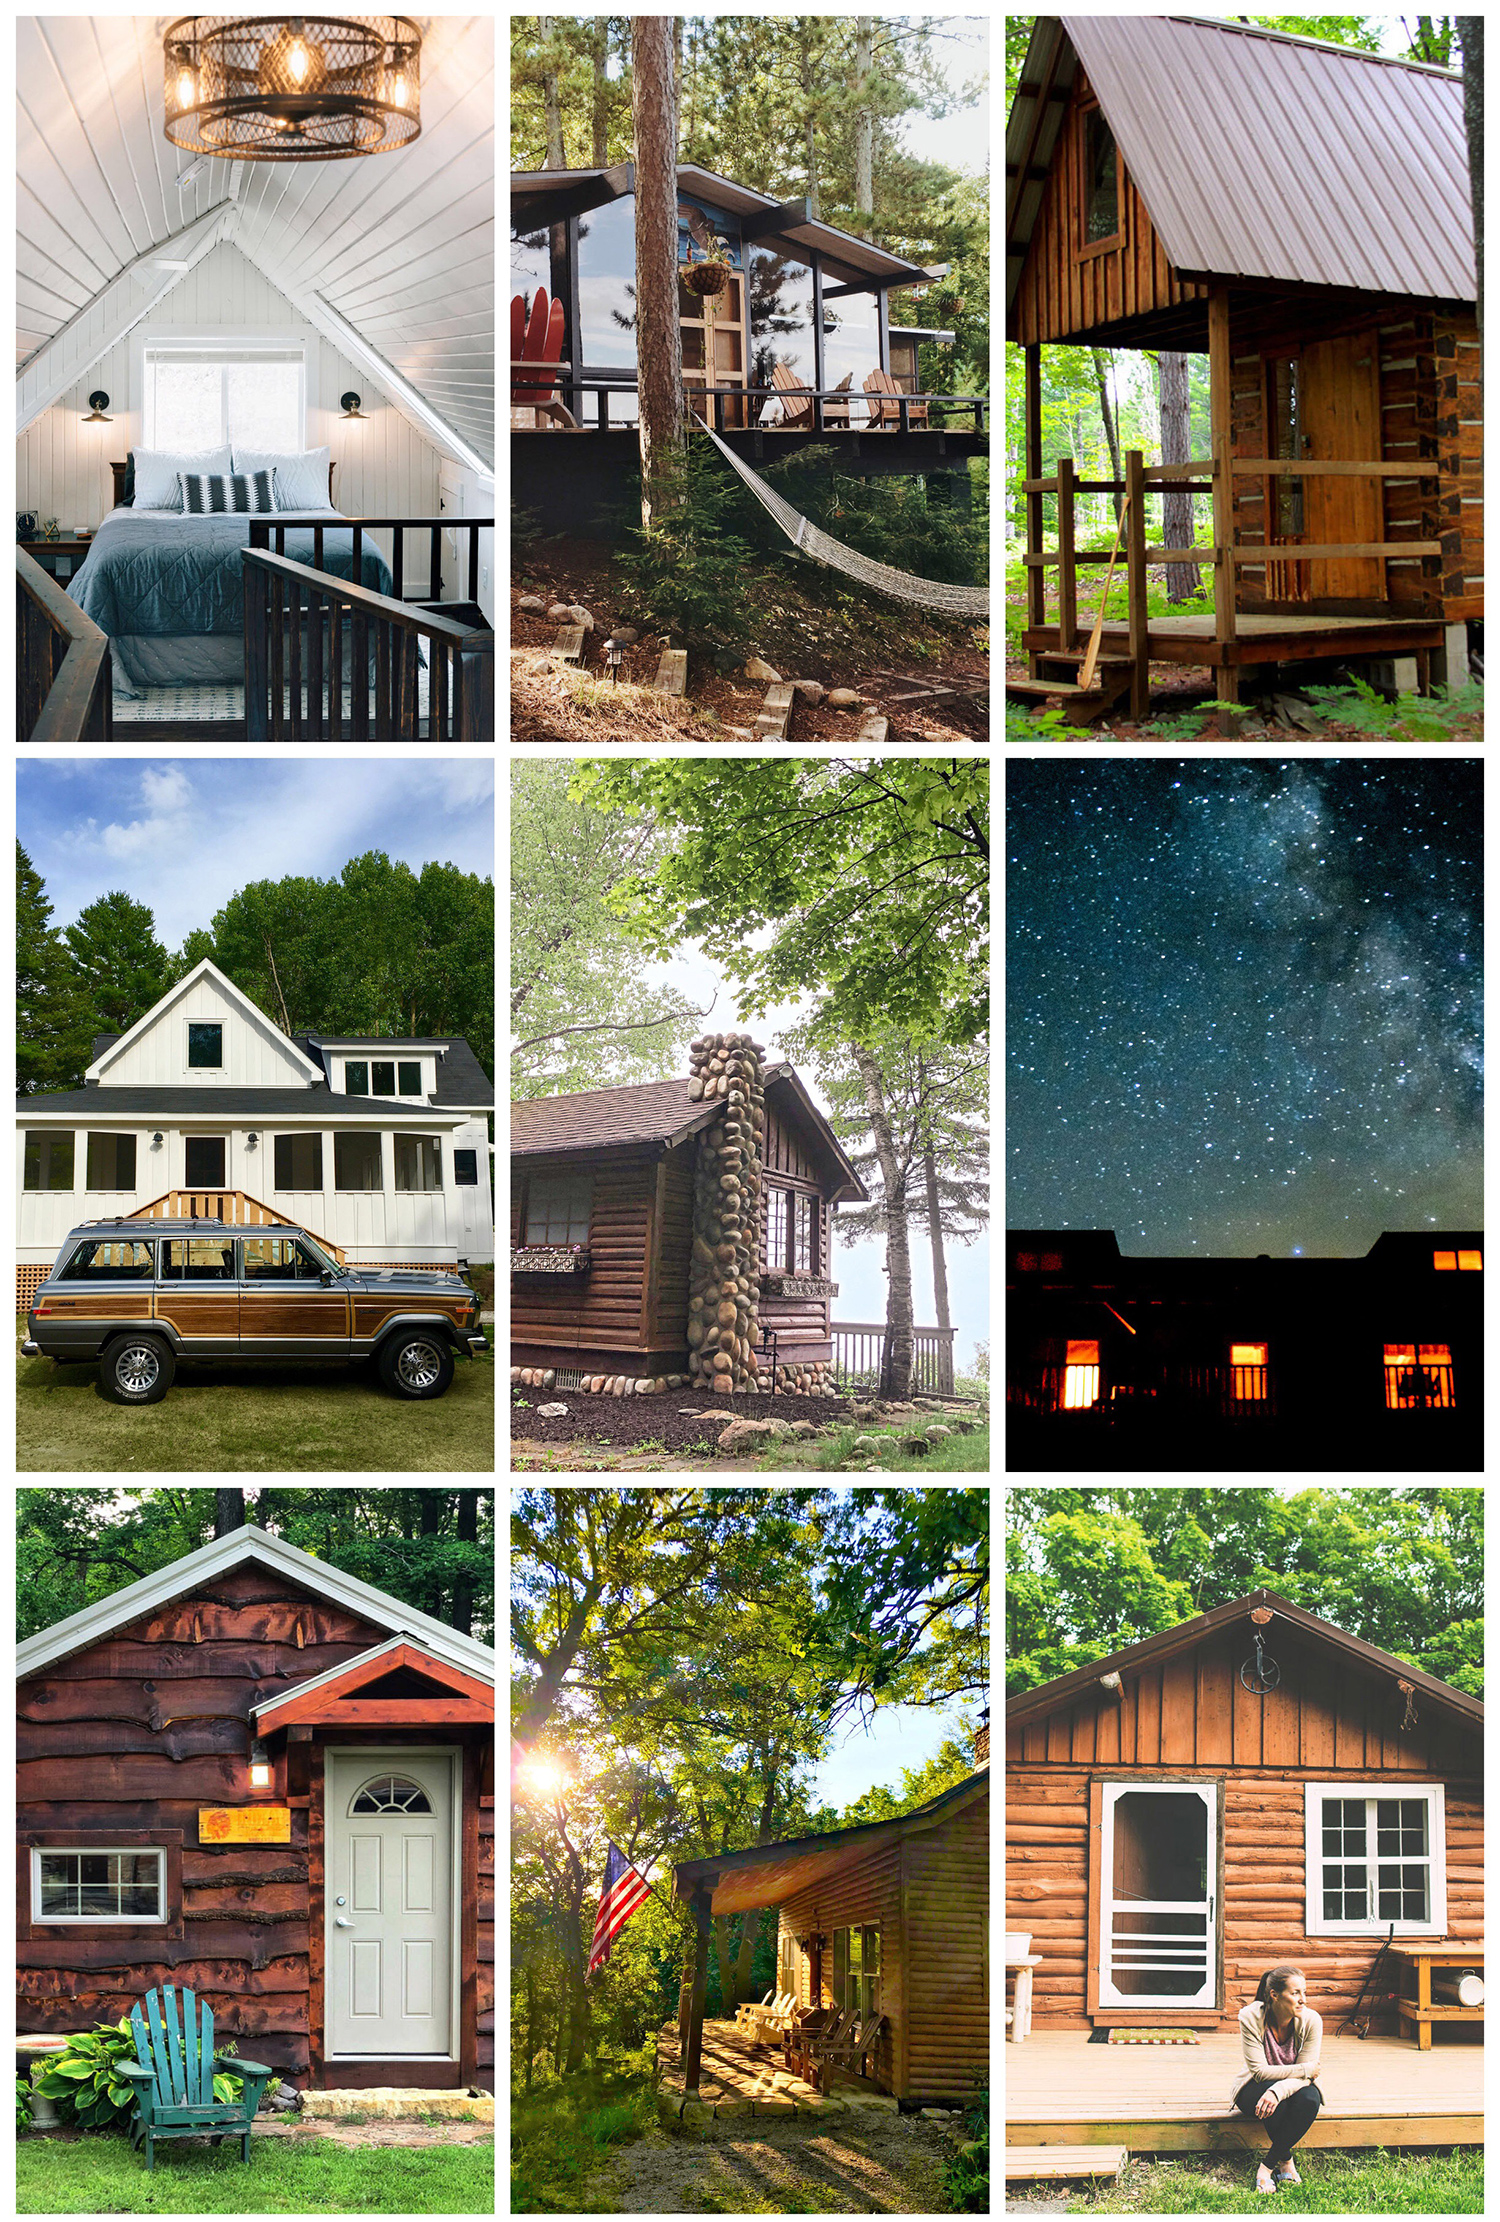 Instagrammers' cabins